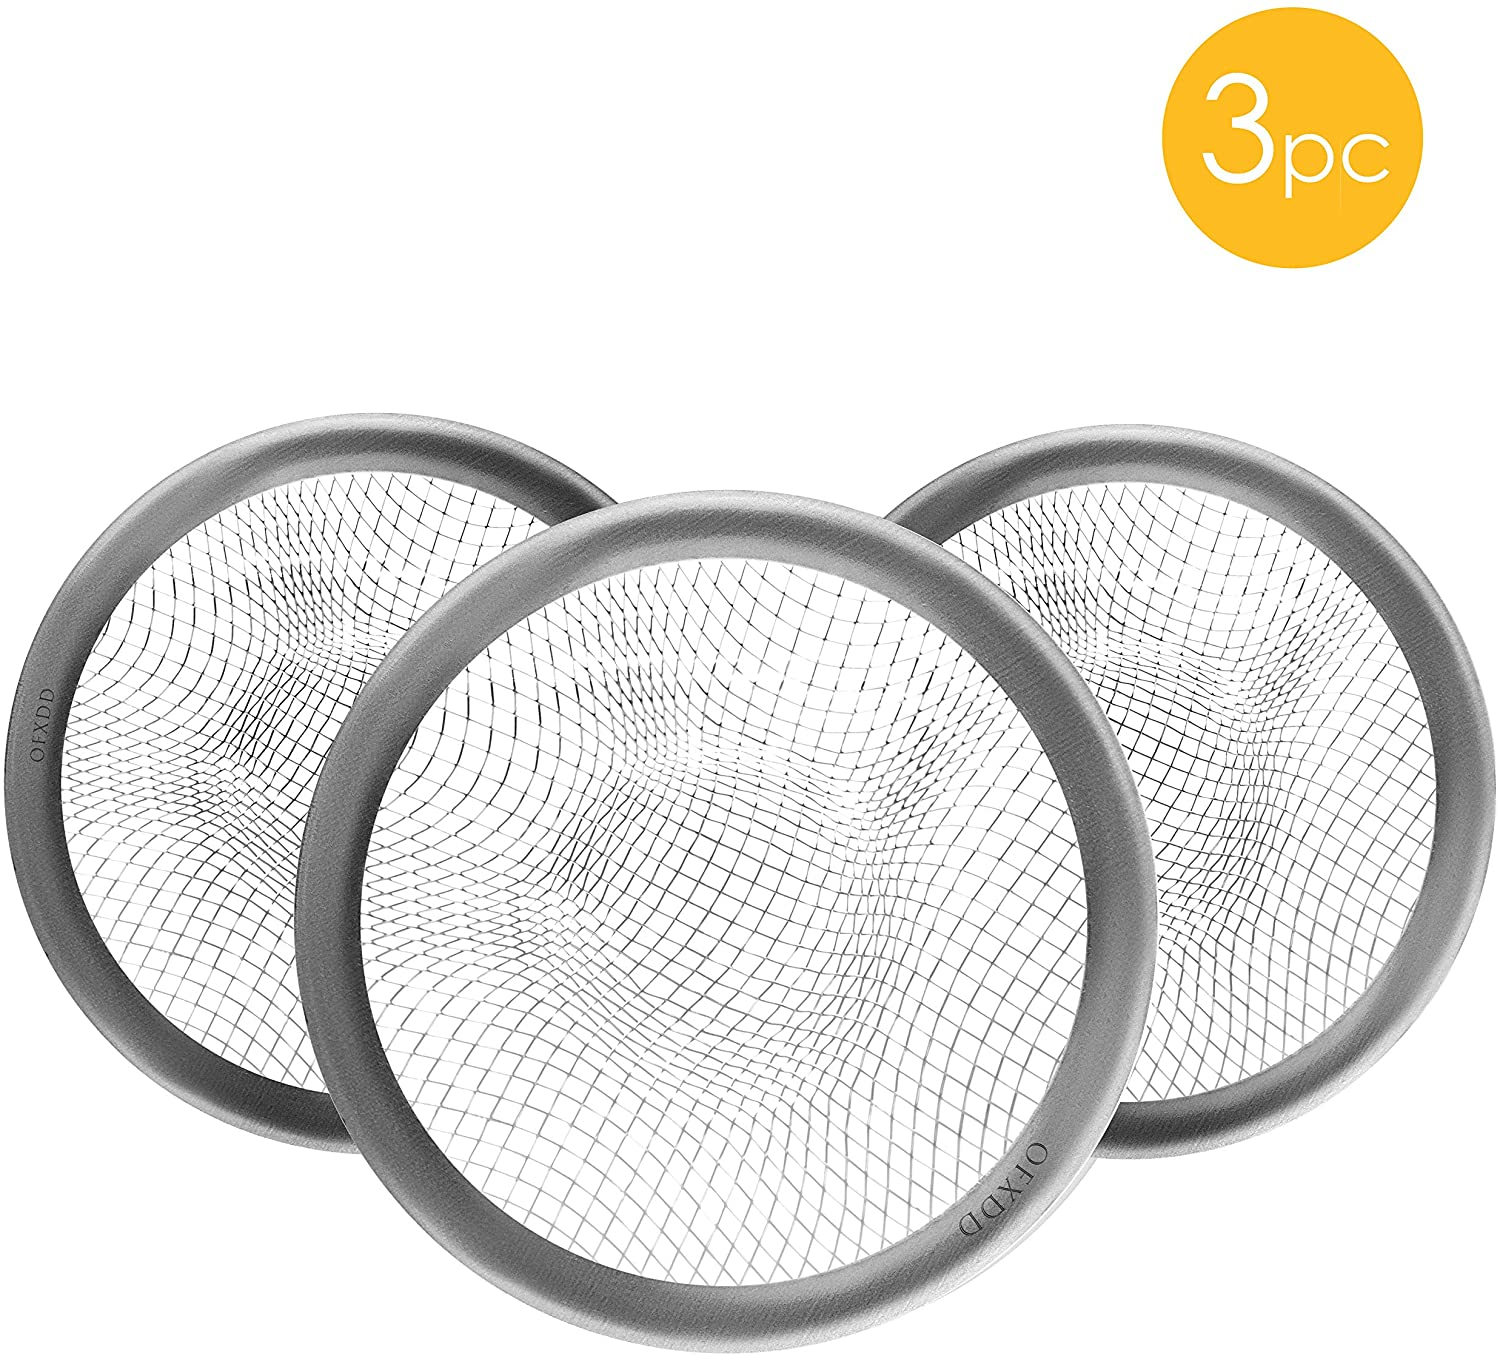 Hair Drainer Catcher Mesh, Bathroom Sink Strainer 3 Inch, Metal Drain Protector, Bath Drain Catcher, Toilet Drain Cover (Pack of 3)